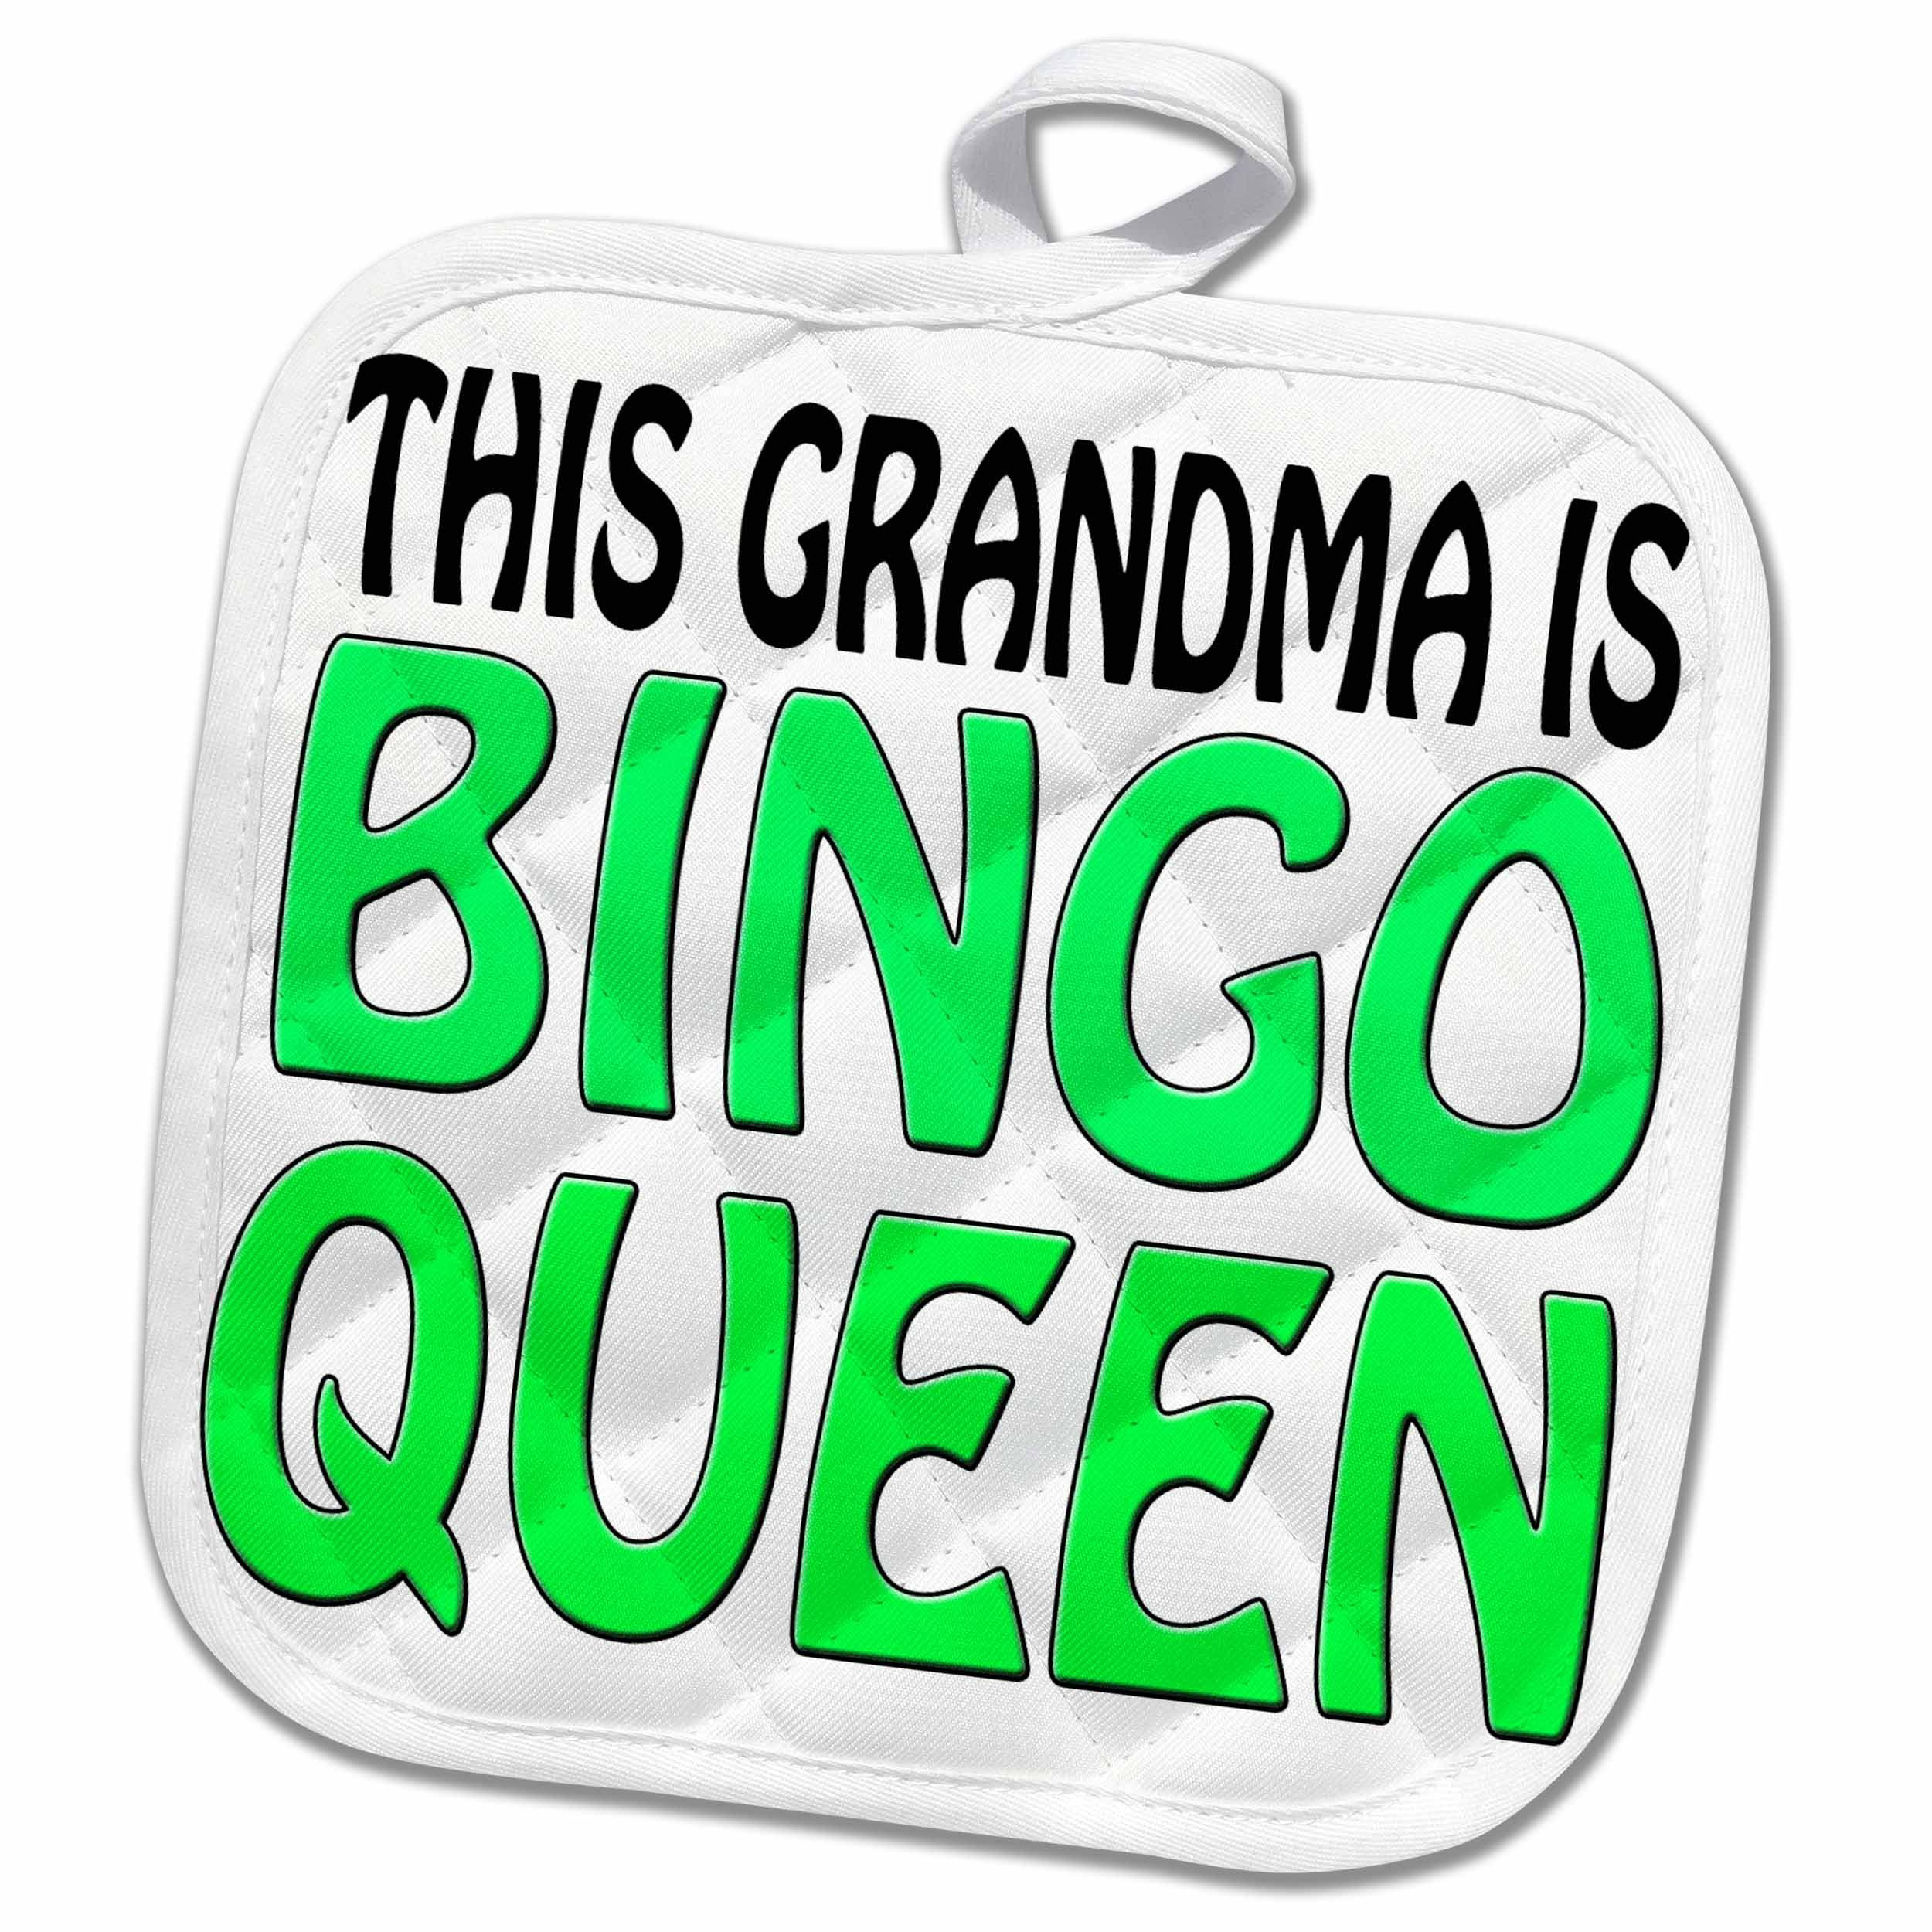 3dRose EvaDane - Funny Quotes - This grandma is bingo queen, Lime green, 8x8 Potholder (phl_149772_1) by 3dRose